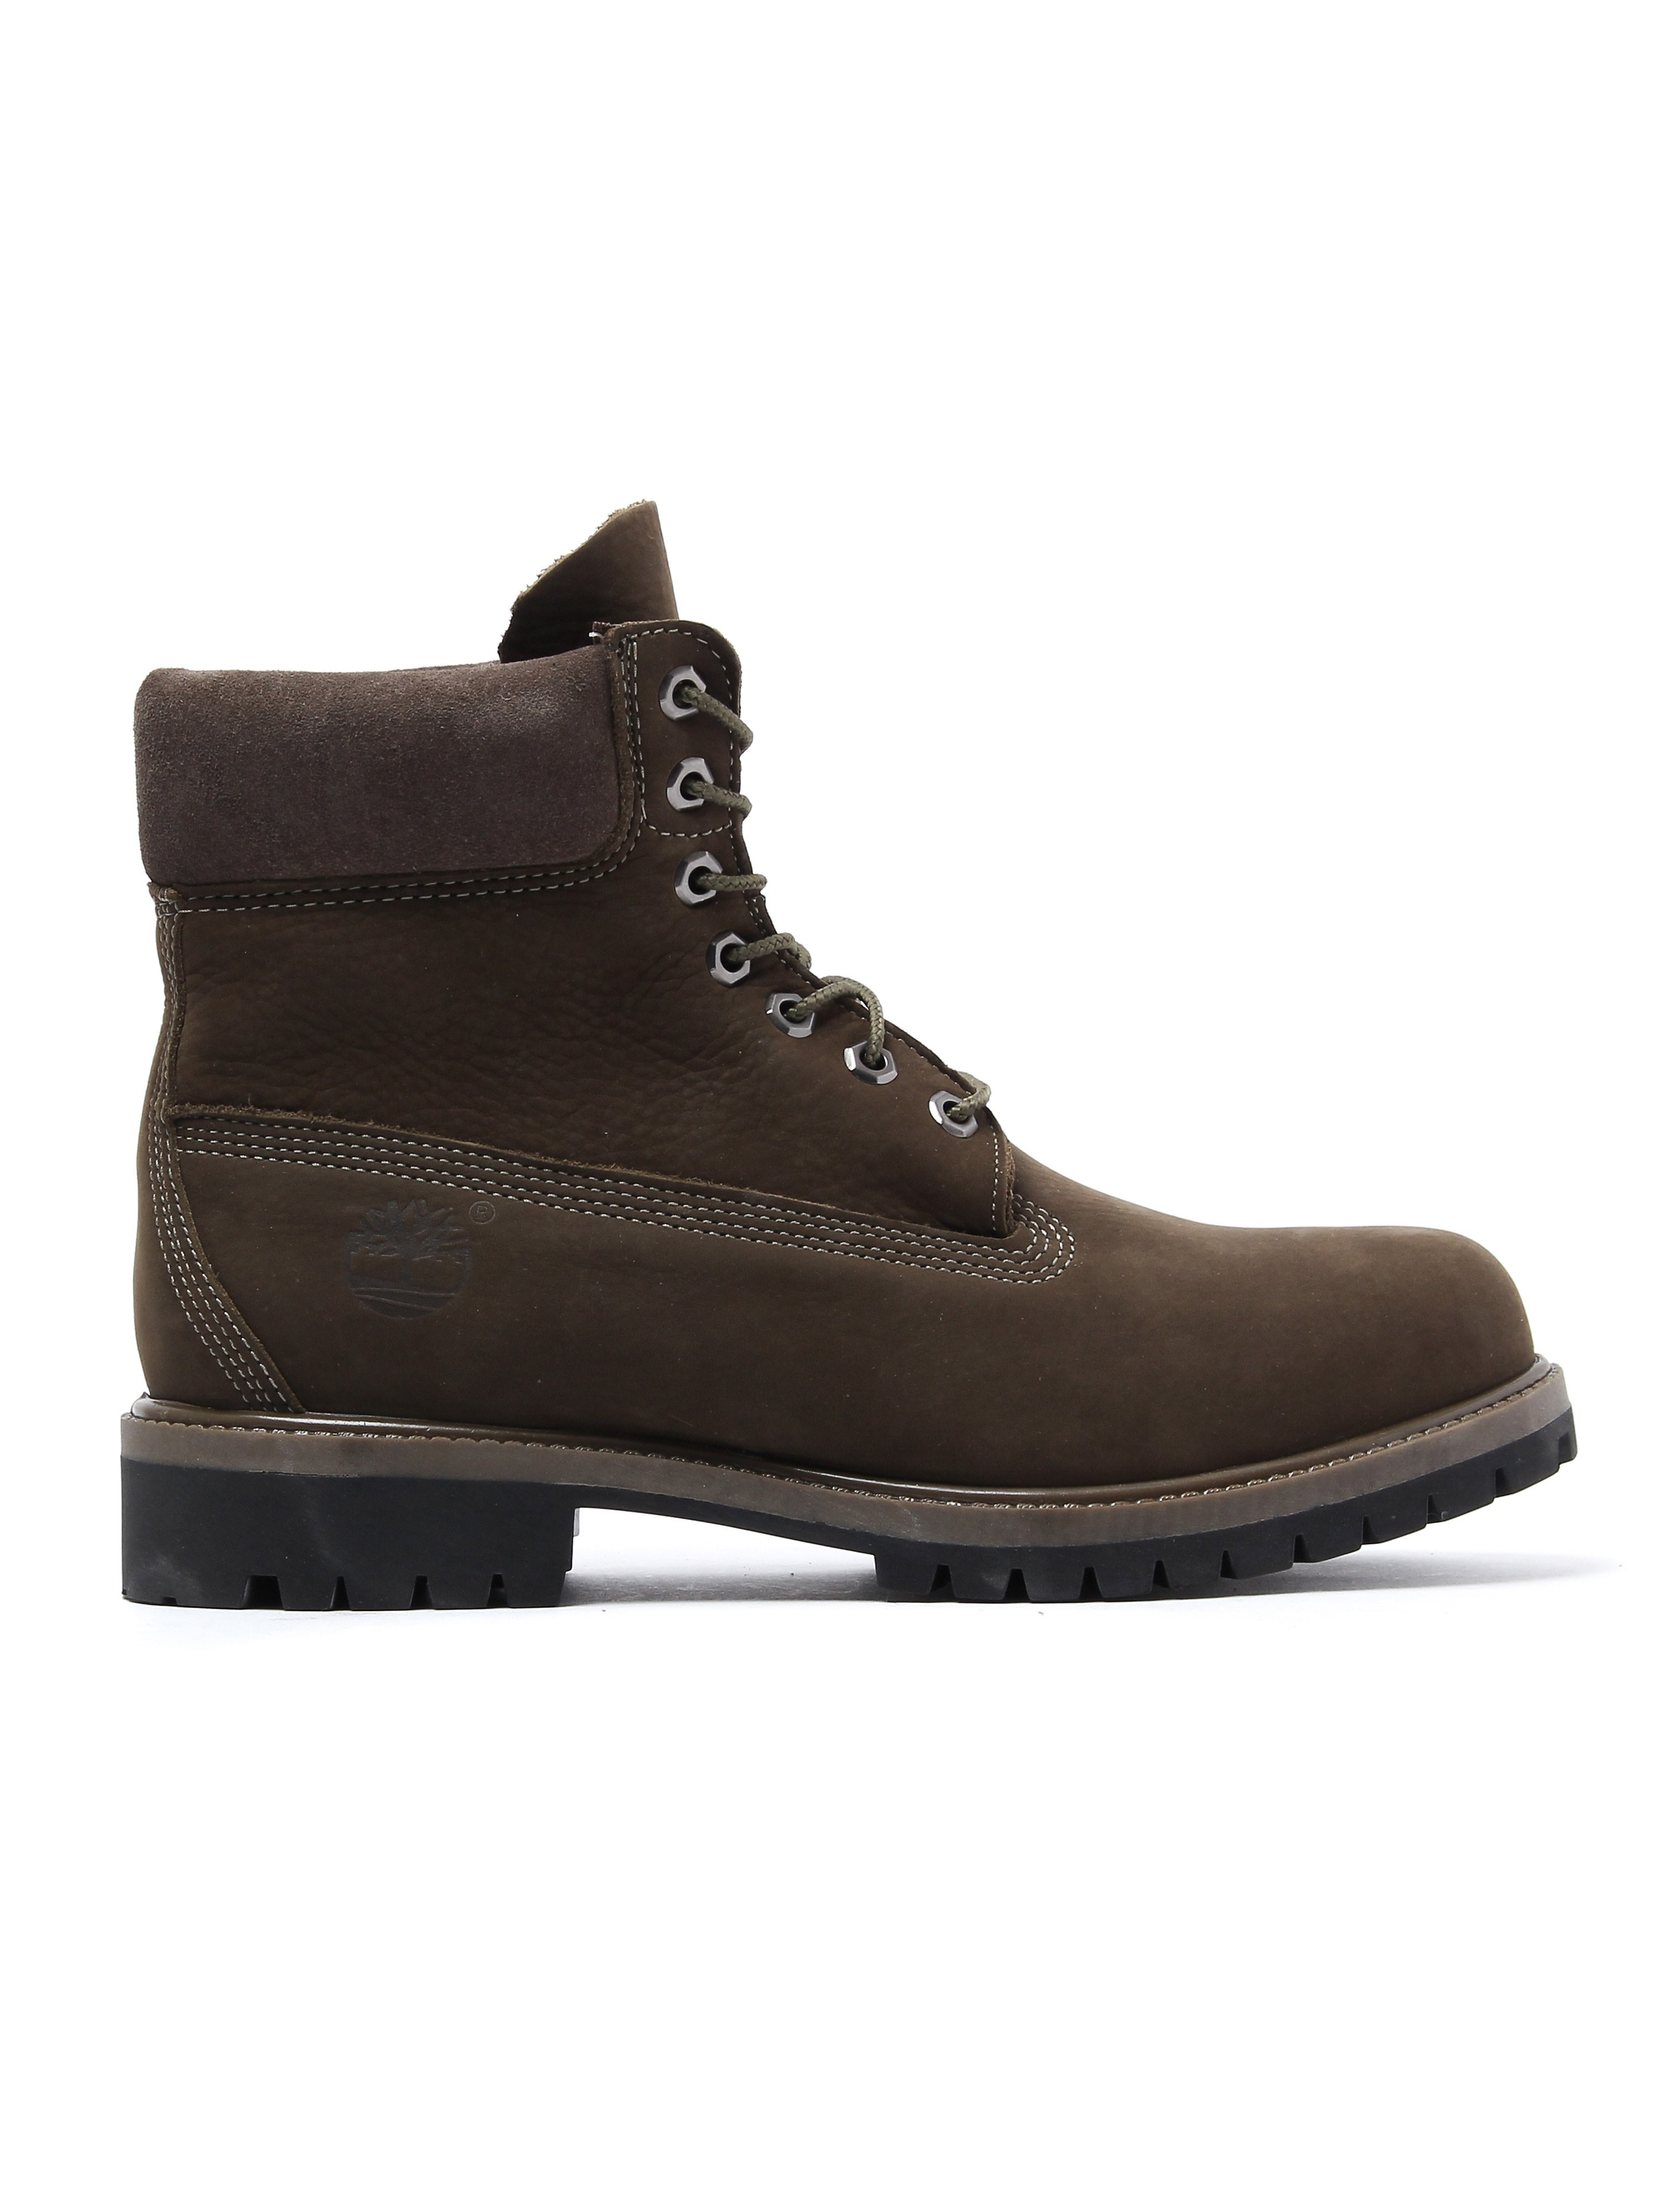 Timberland Men's 6 Inch Premium Boots - Olive Nubuck